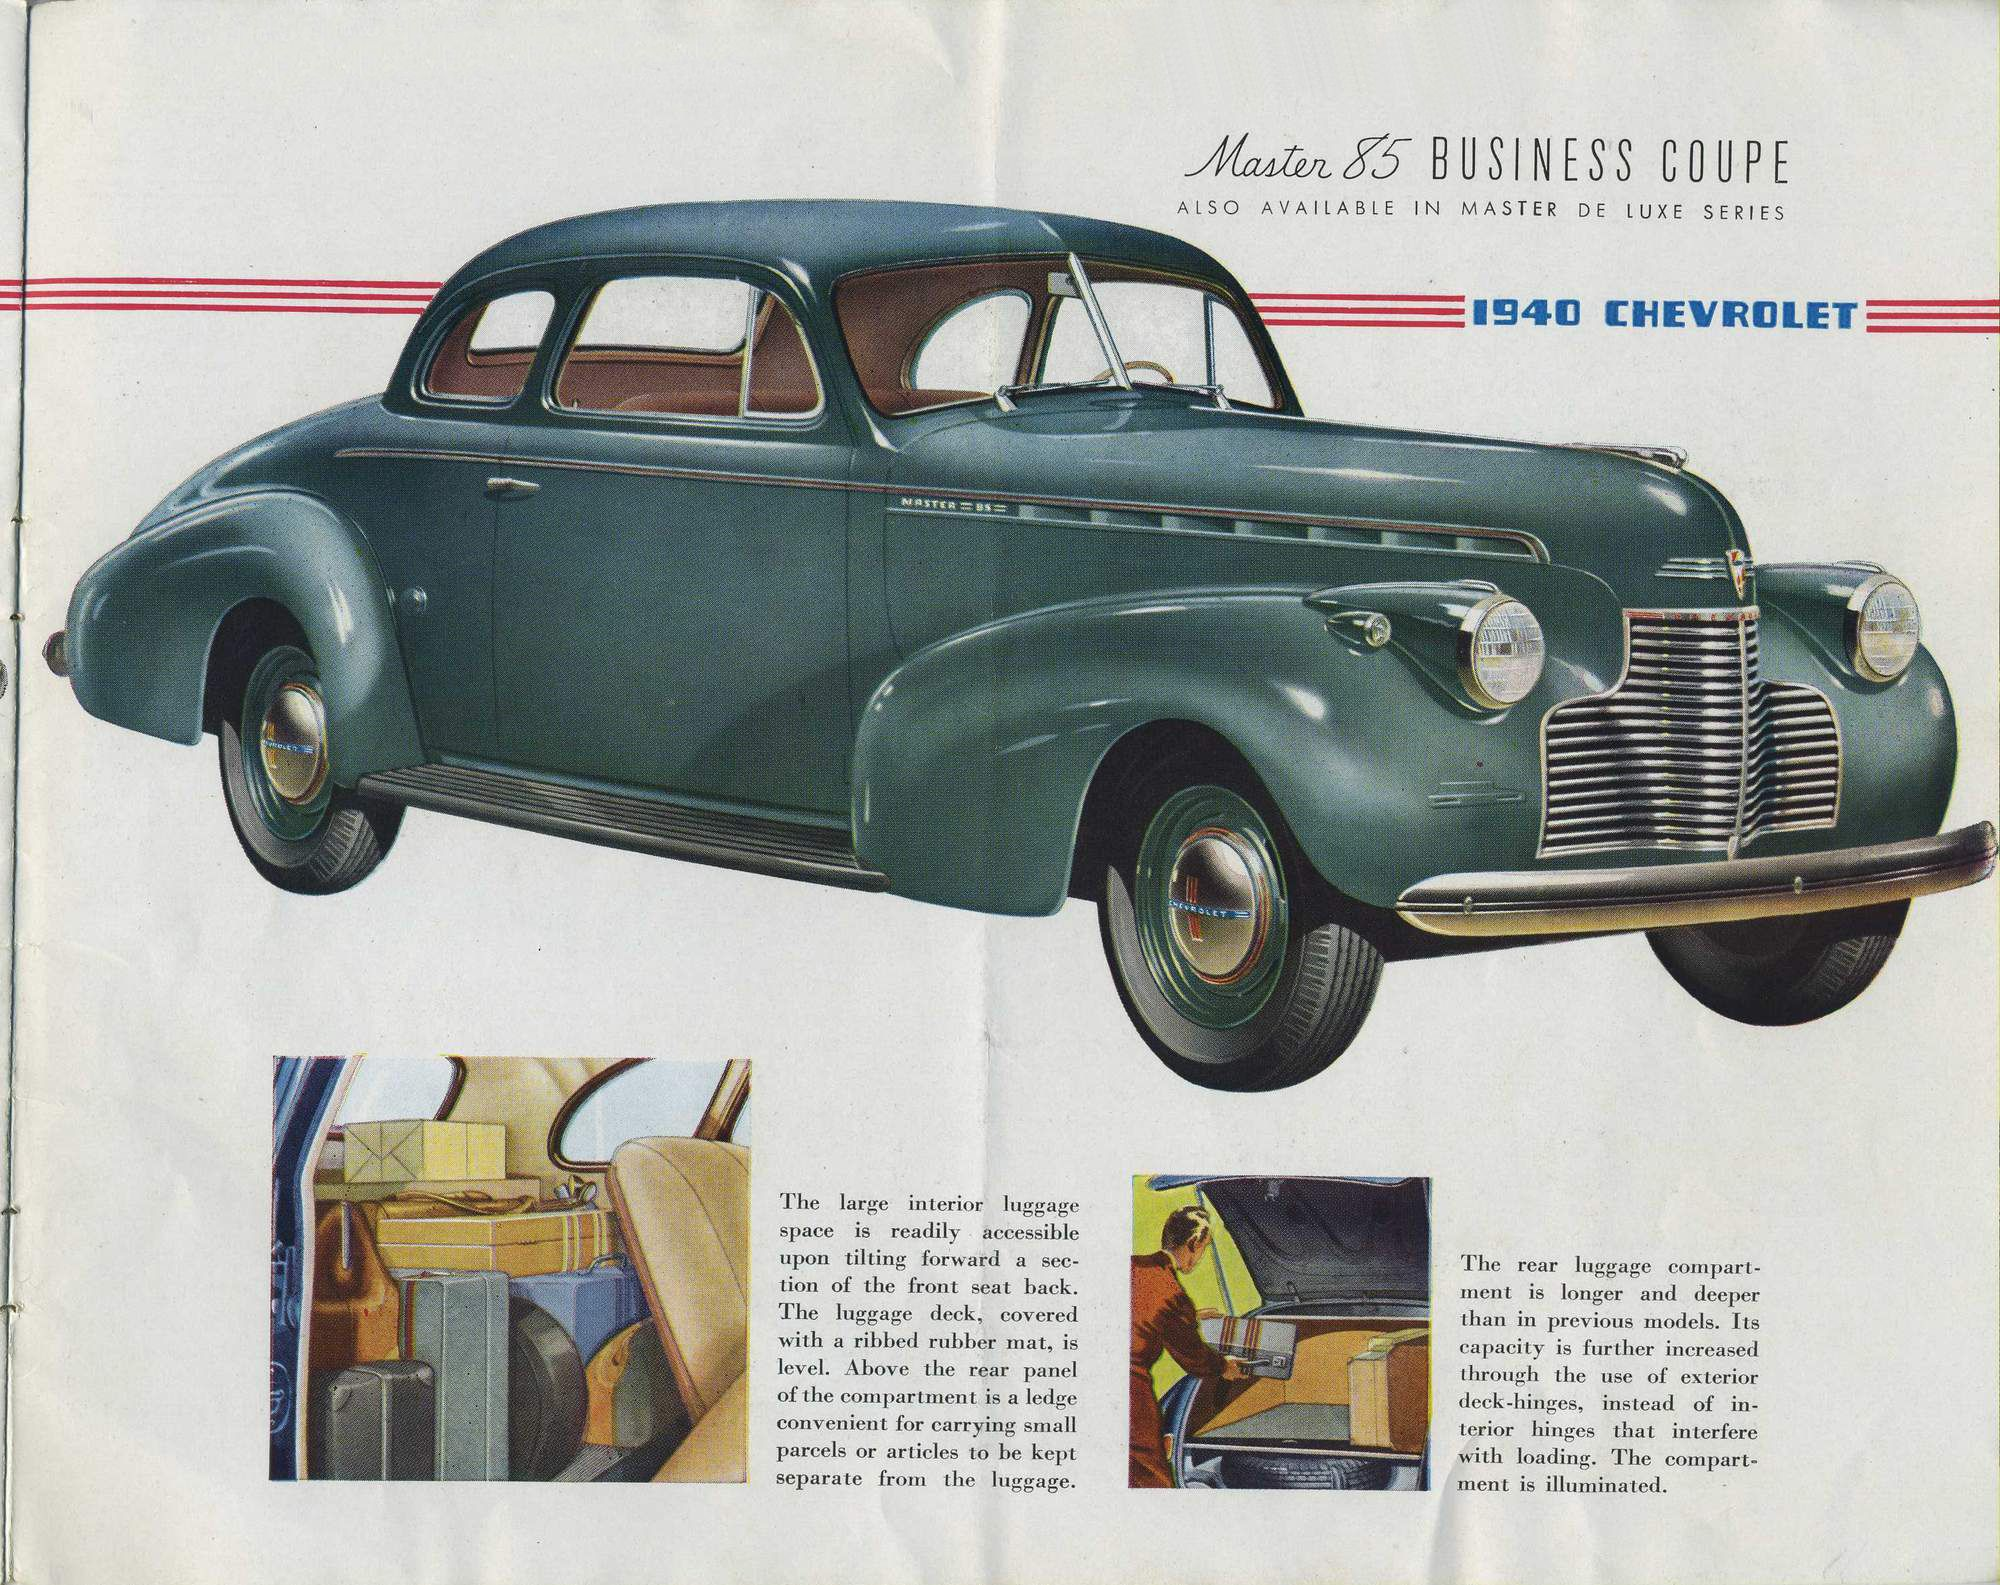 1940 chevrolet master 85 business coupe